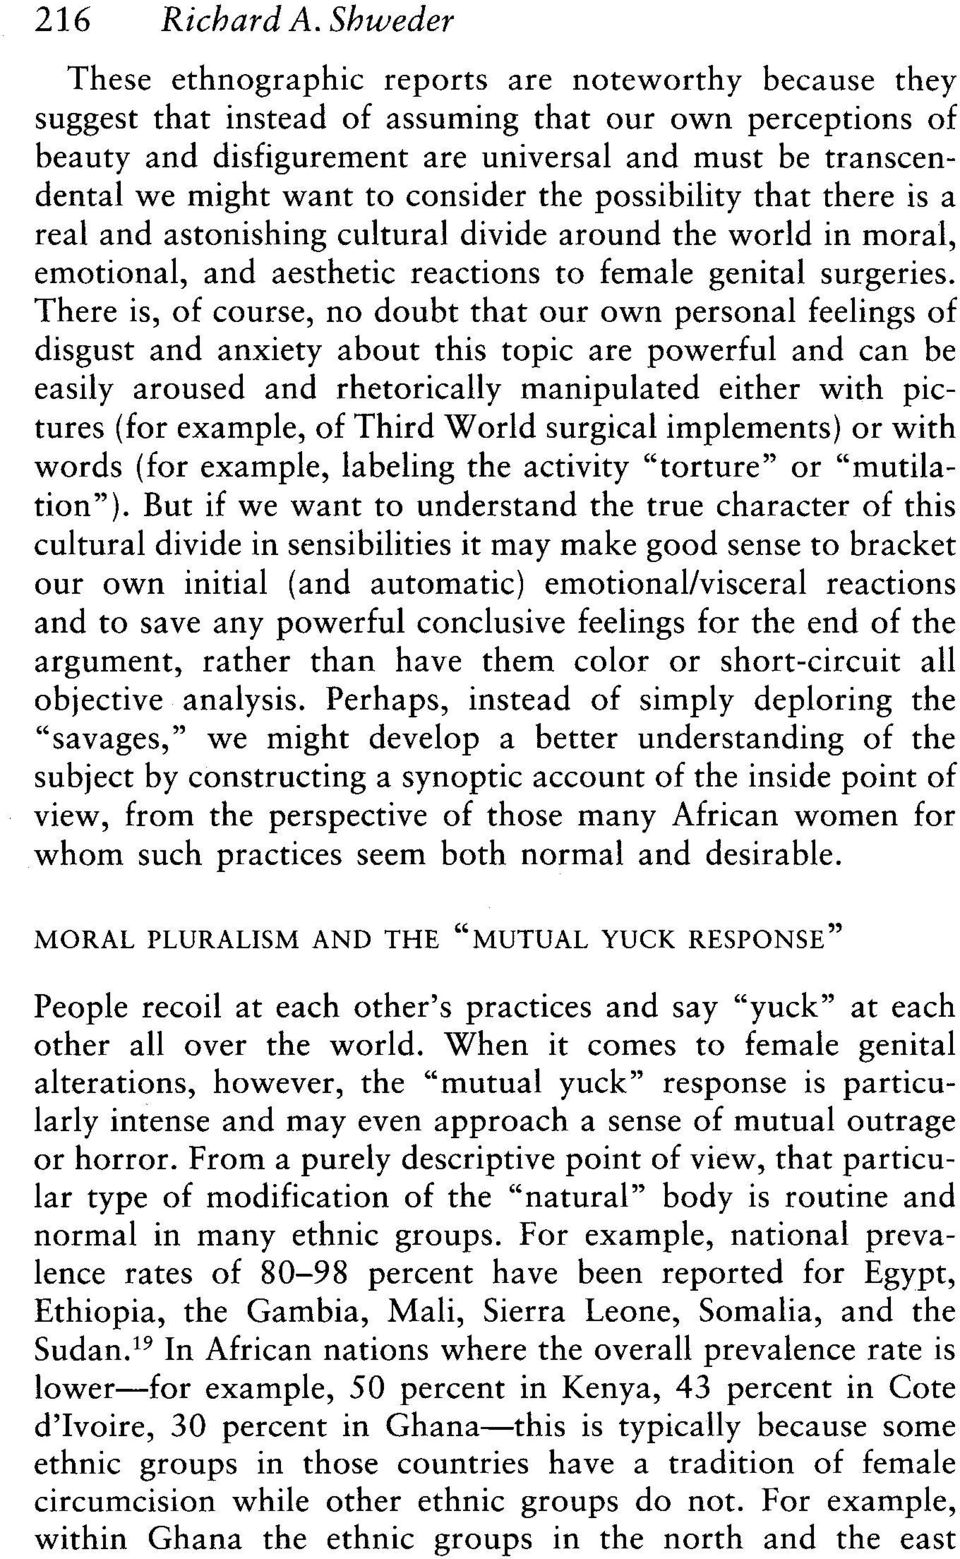 want consider the possibility that there is a real and asnishing cultural divide around the world in moral, emotional, and aesthetic reactions female genital surgeries.